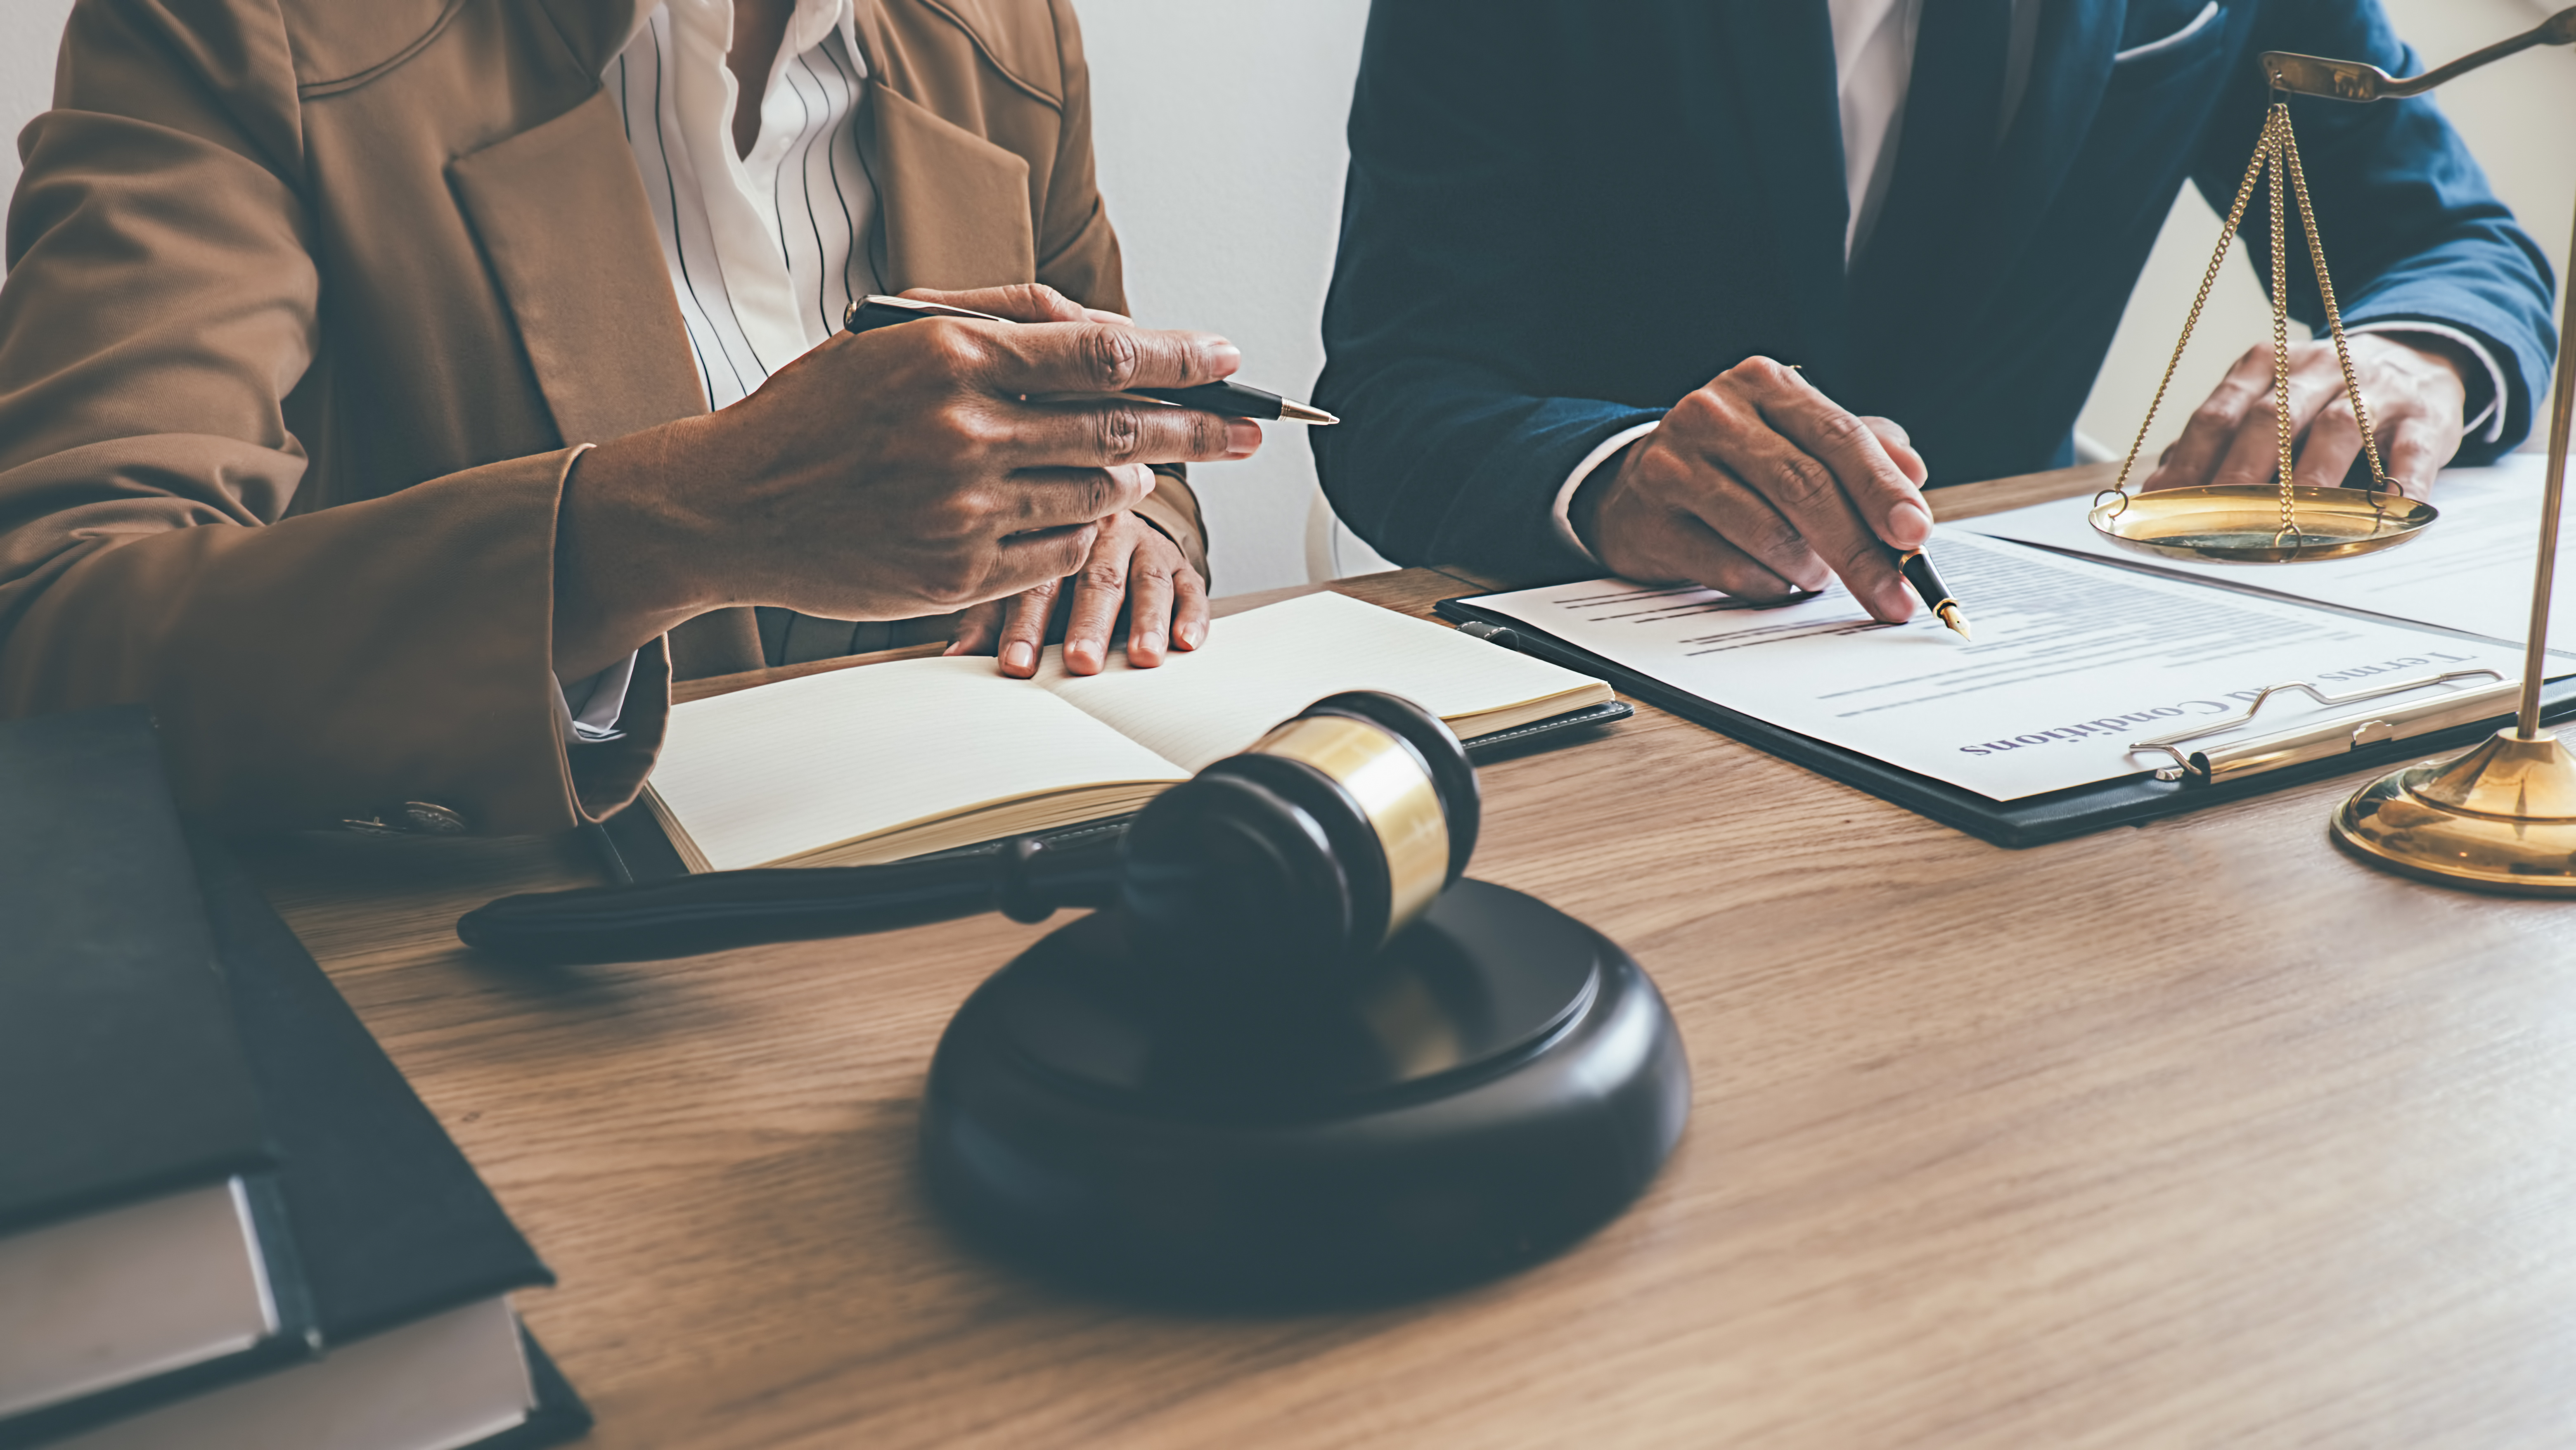 Consenting to Jurisdiction: Forum Selection Clauses and the 'Minimum Contacts' Requirement